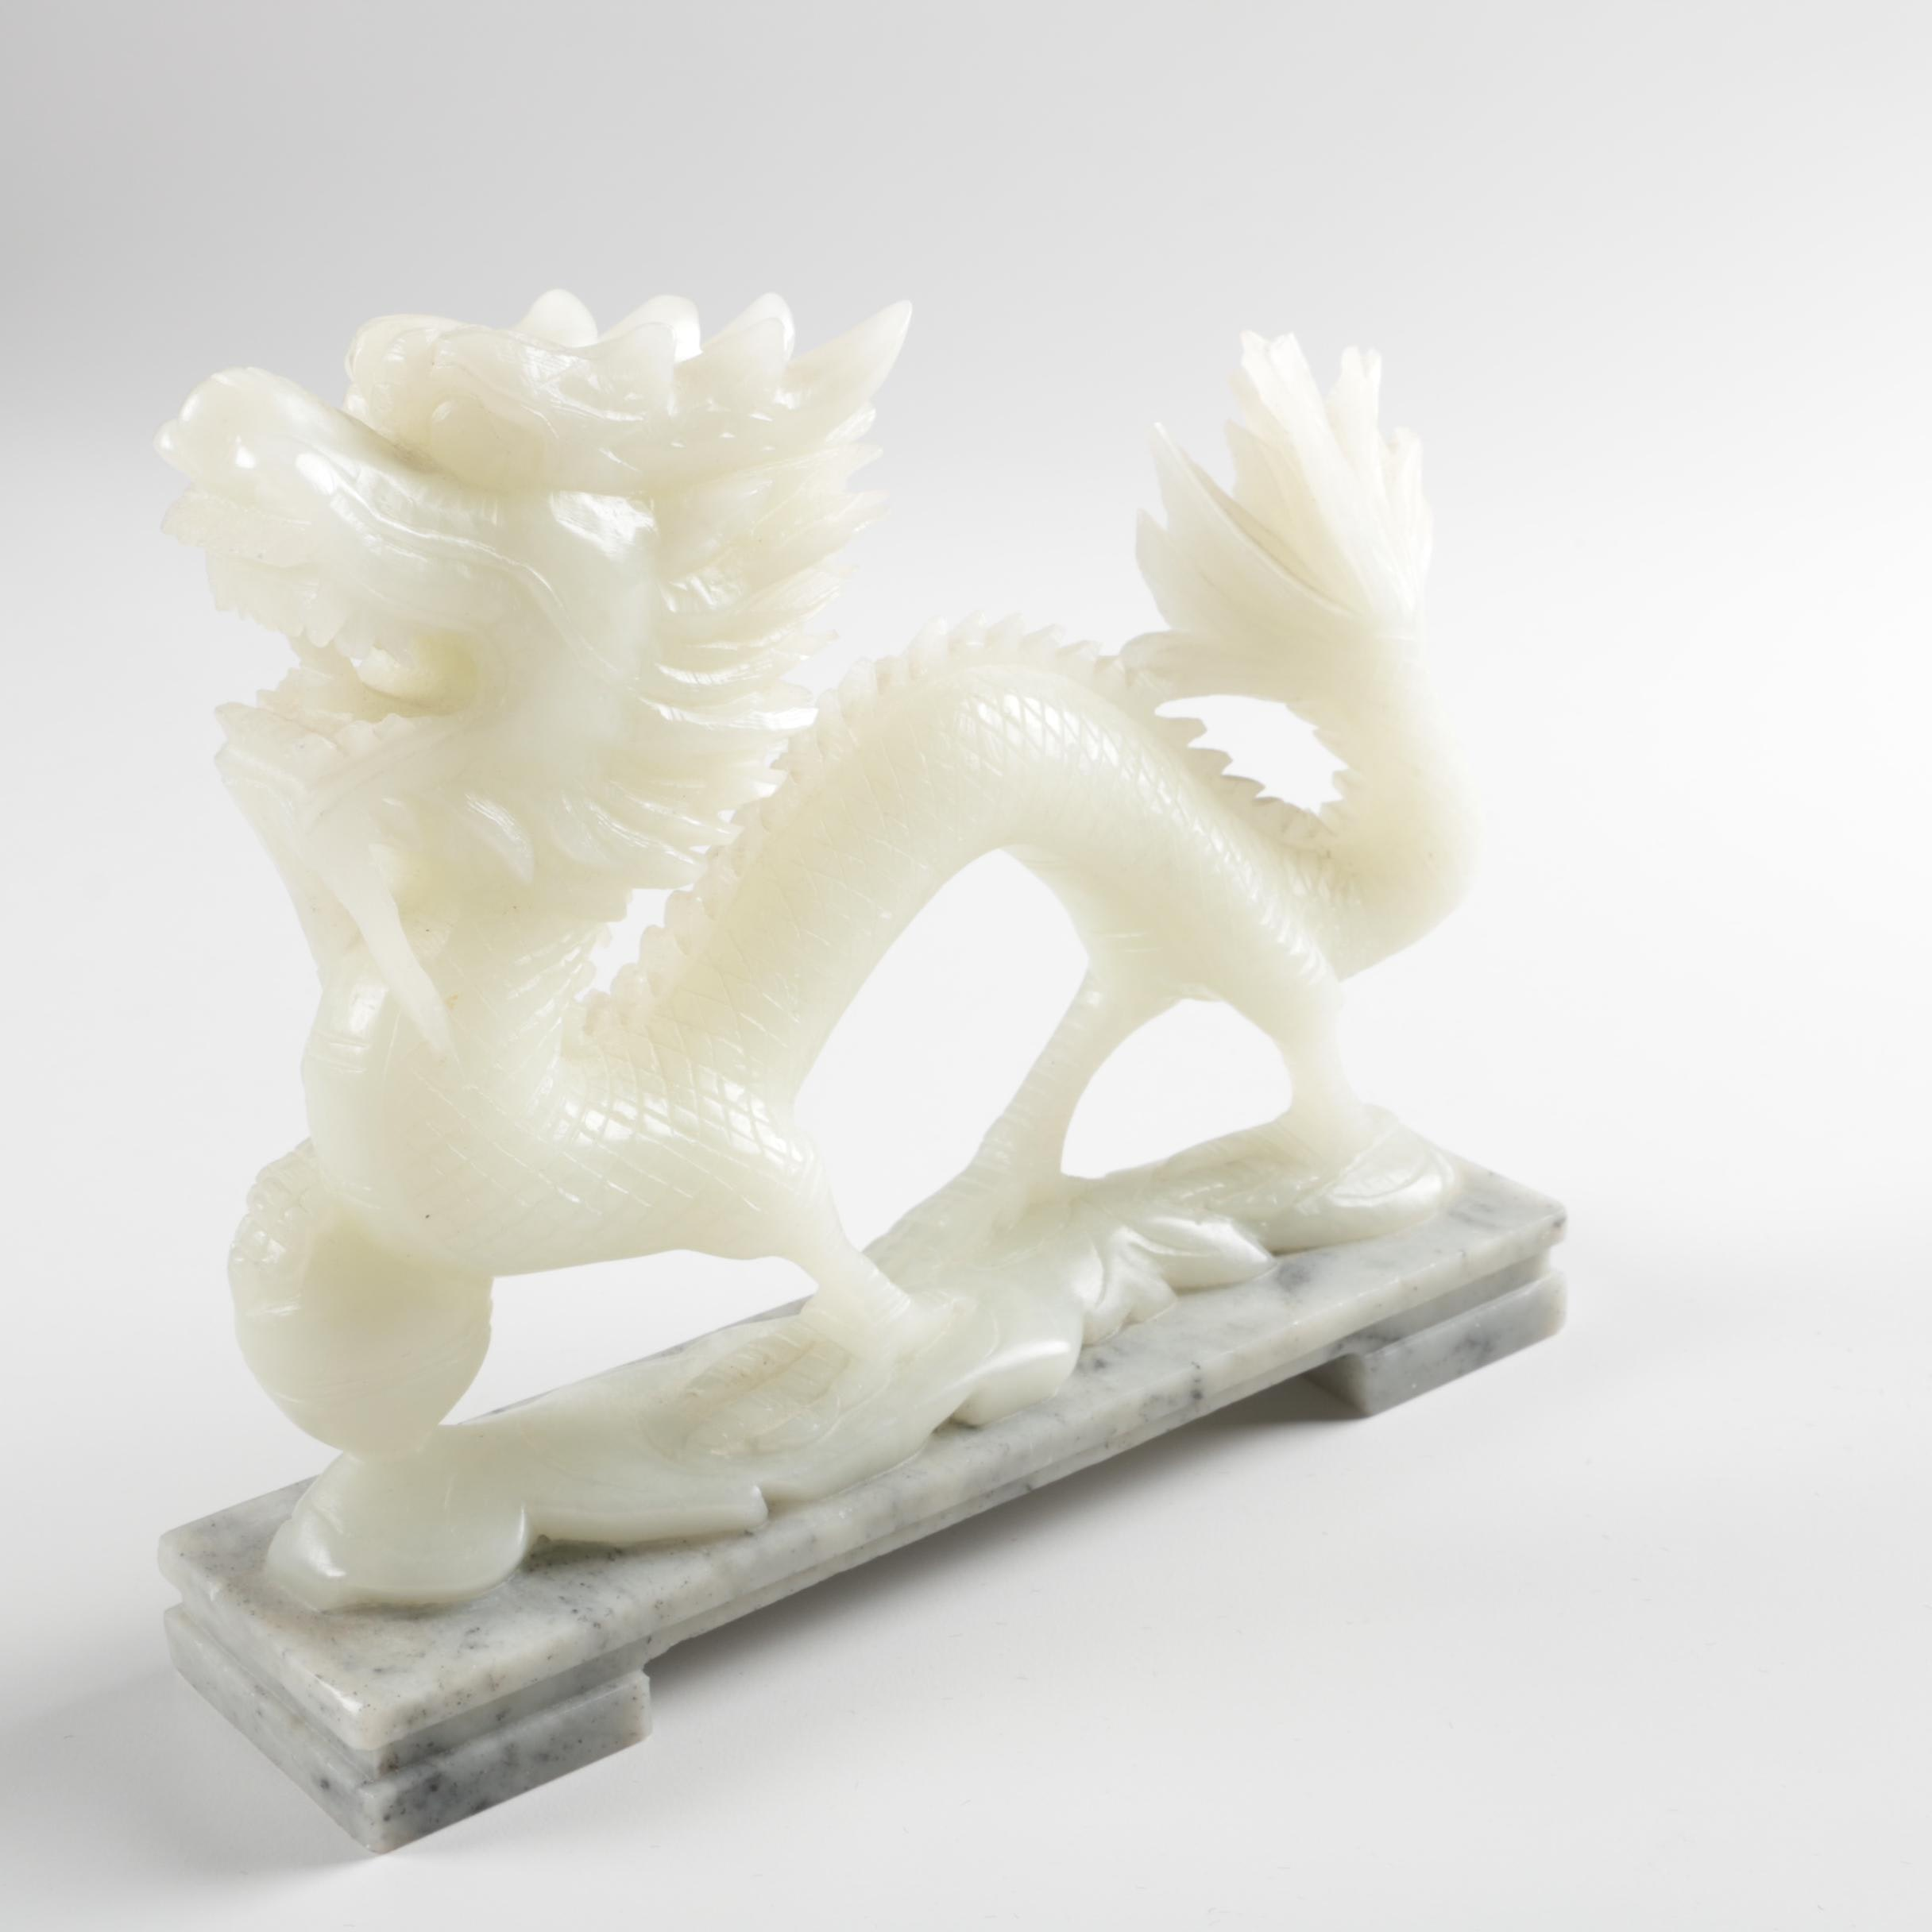 East Asian Style Soapstone Dragon Sculpture